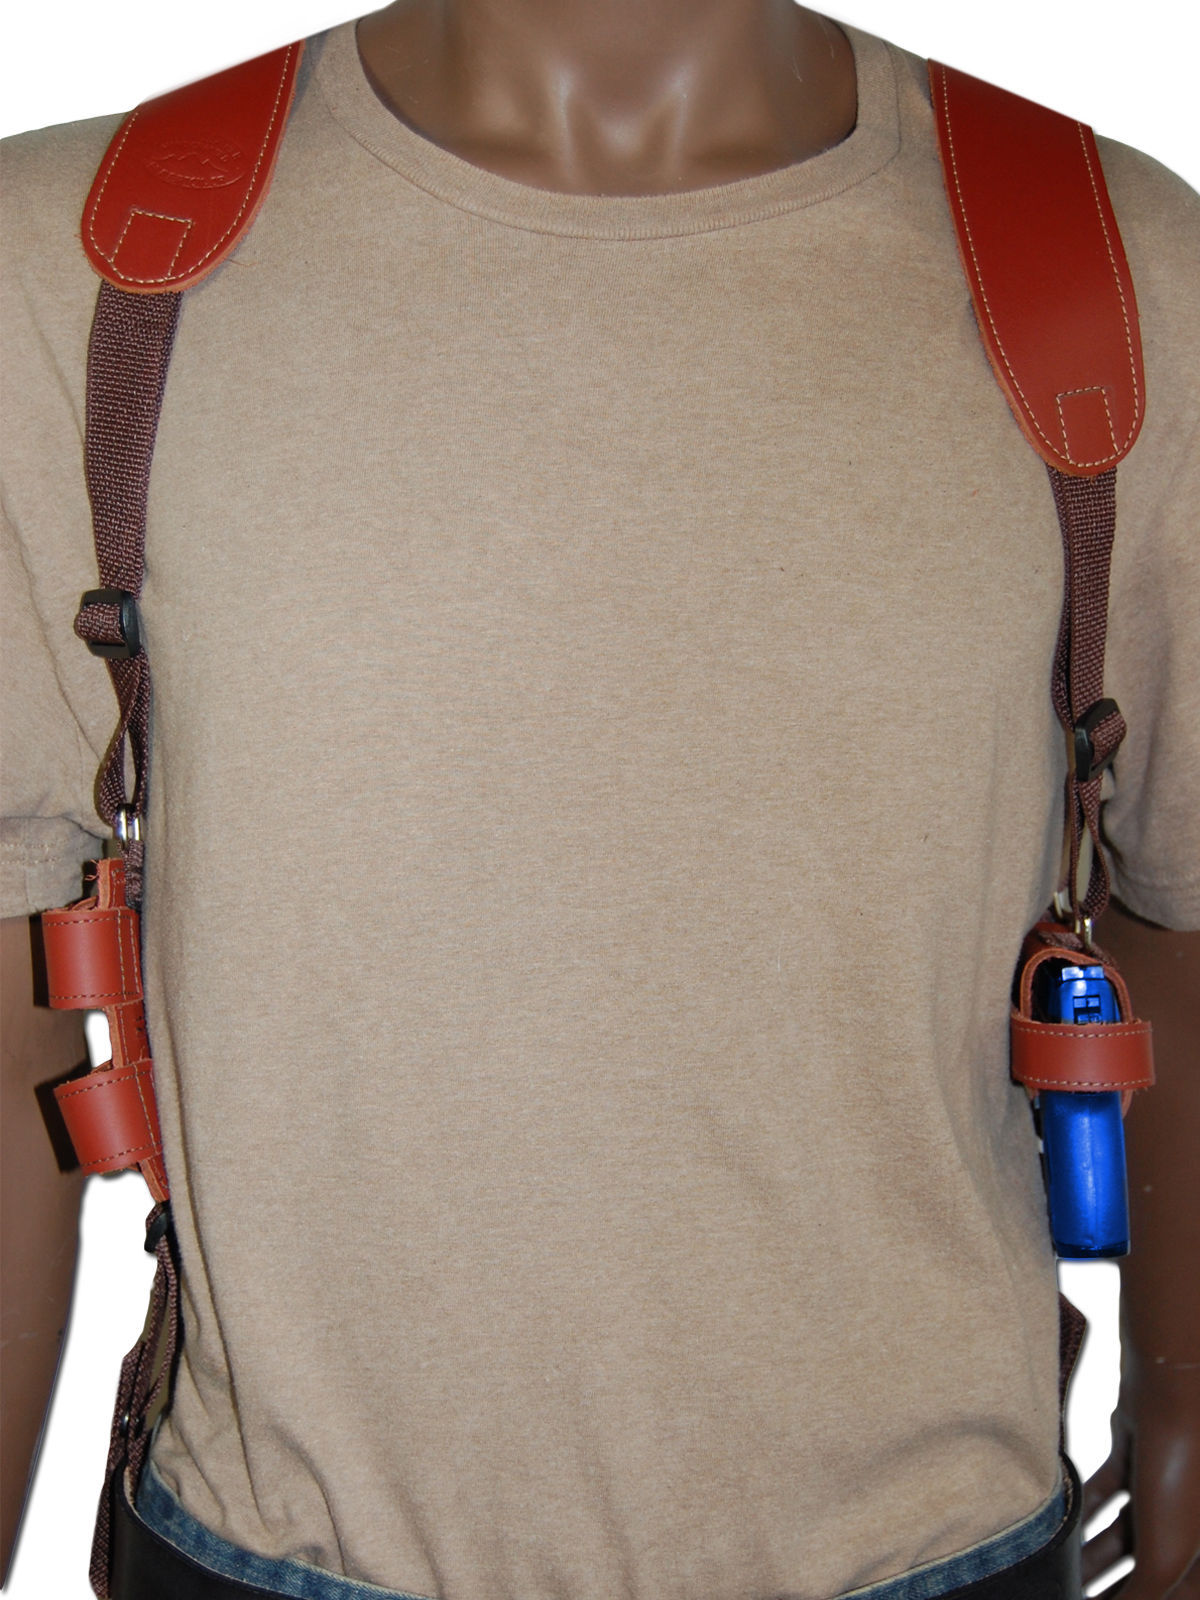 NEW Burgundy Leather Shoulder Holster w/Dbl Mag Pouch Smith&Wesson Mini-Pocket